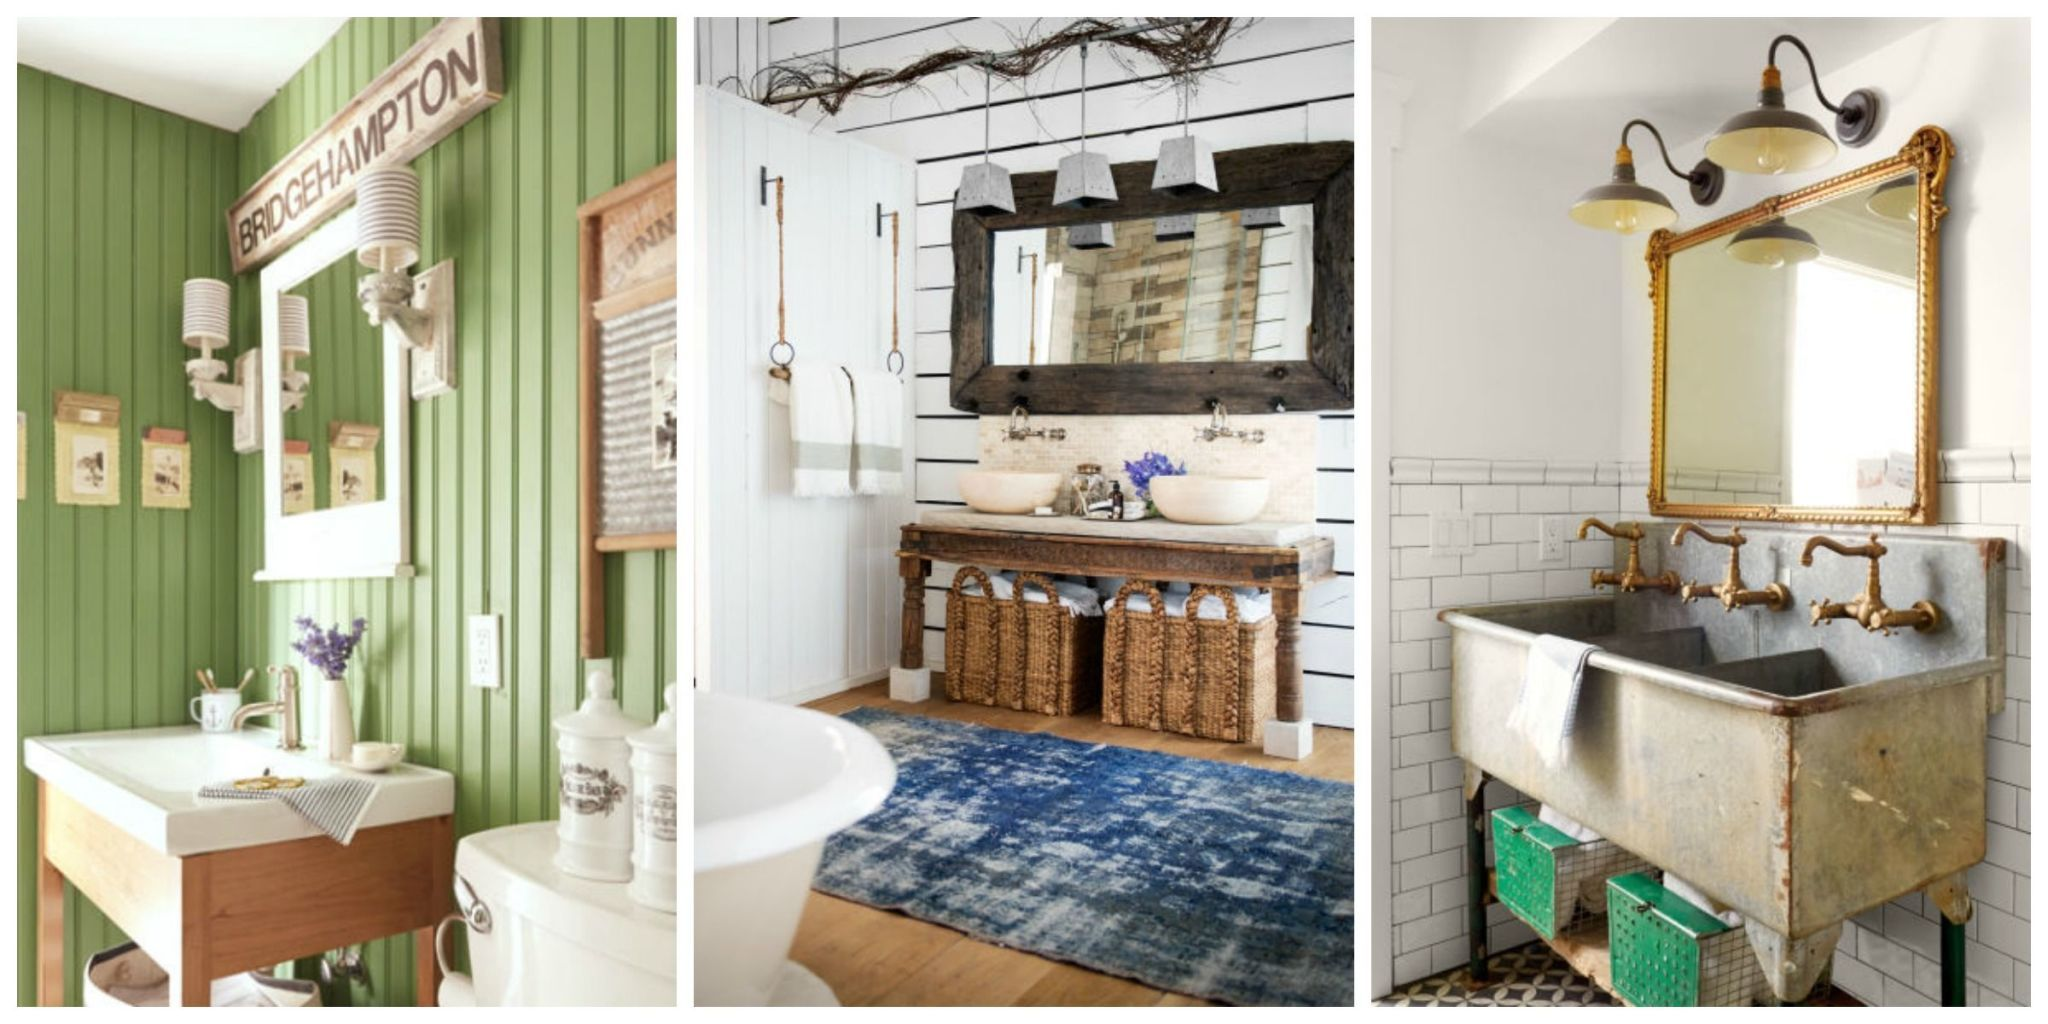 Attractive From Vintage Fixtures To Bold Wallpaper Patterns, These Beautiful Bathroom  Design Ideas Will Make Your Homeu0027s Smallest Room The Most Peaceful Spot In  The ...